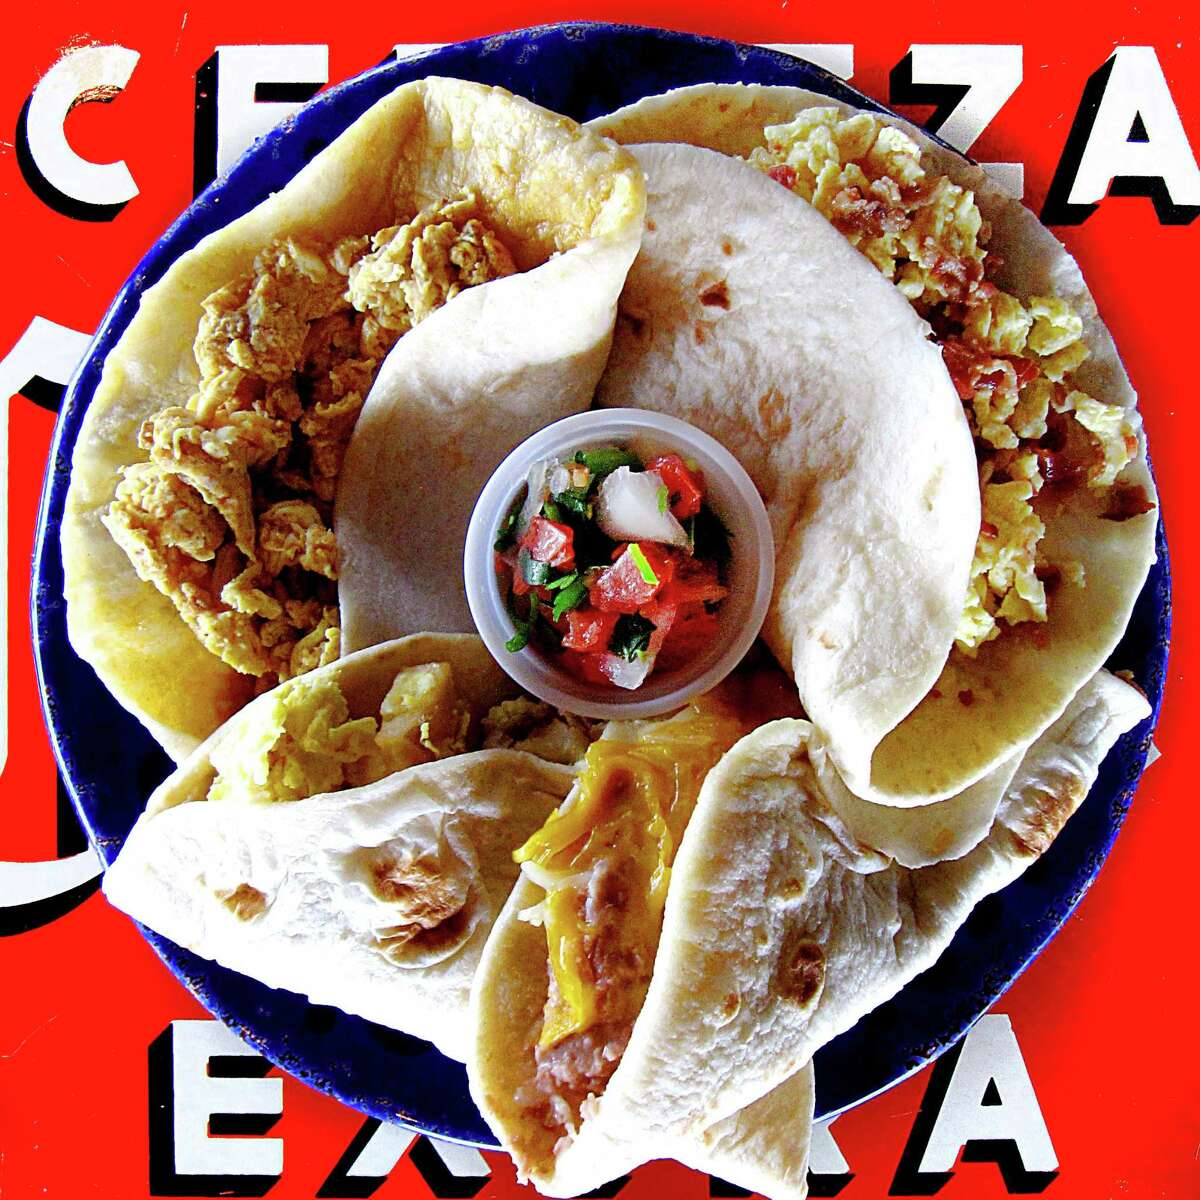 Taco Cabana is partnering with DoorDash to offer home delivery.